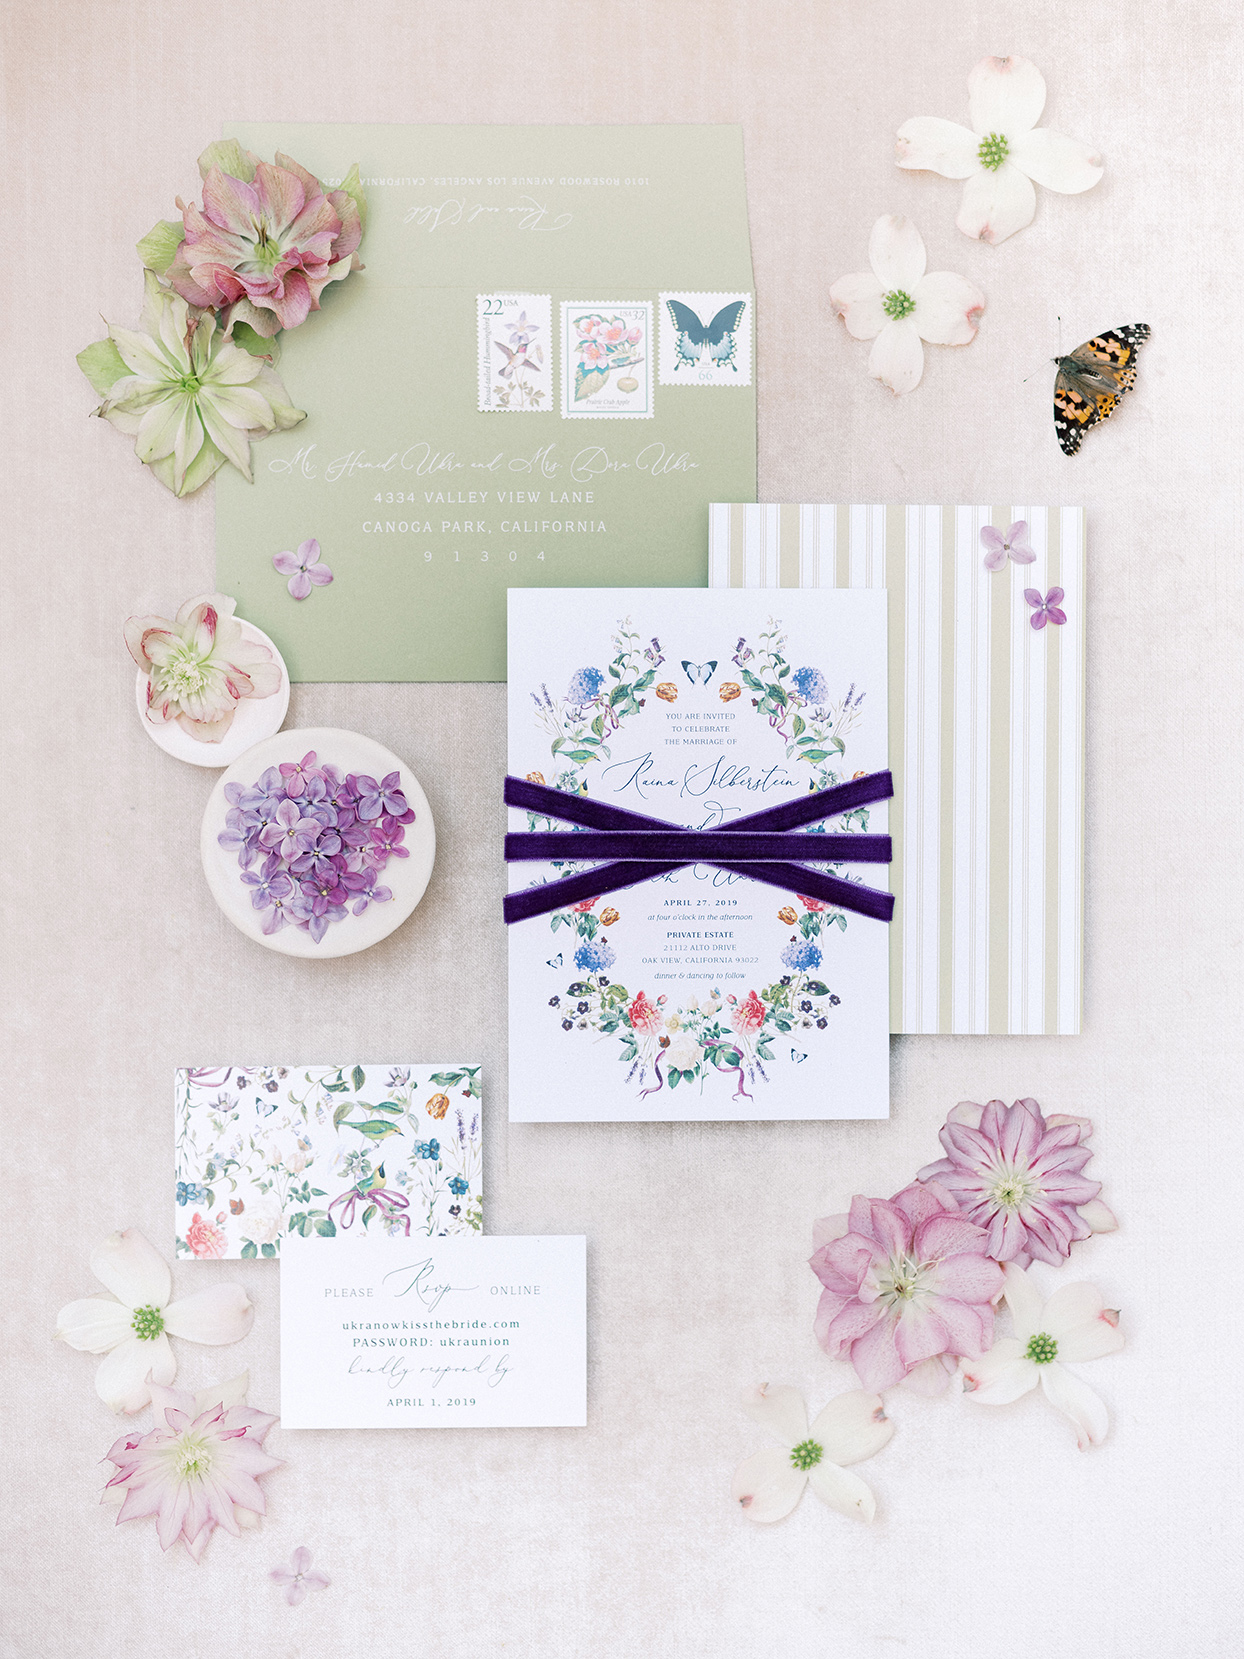 raina salih wedding invitations lavender, green, floral